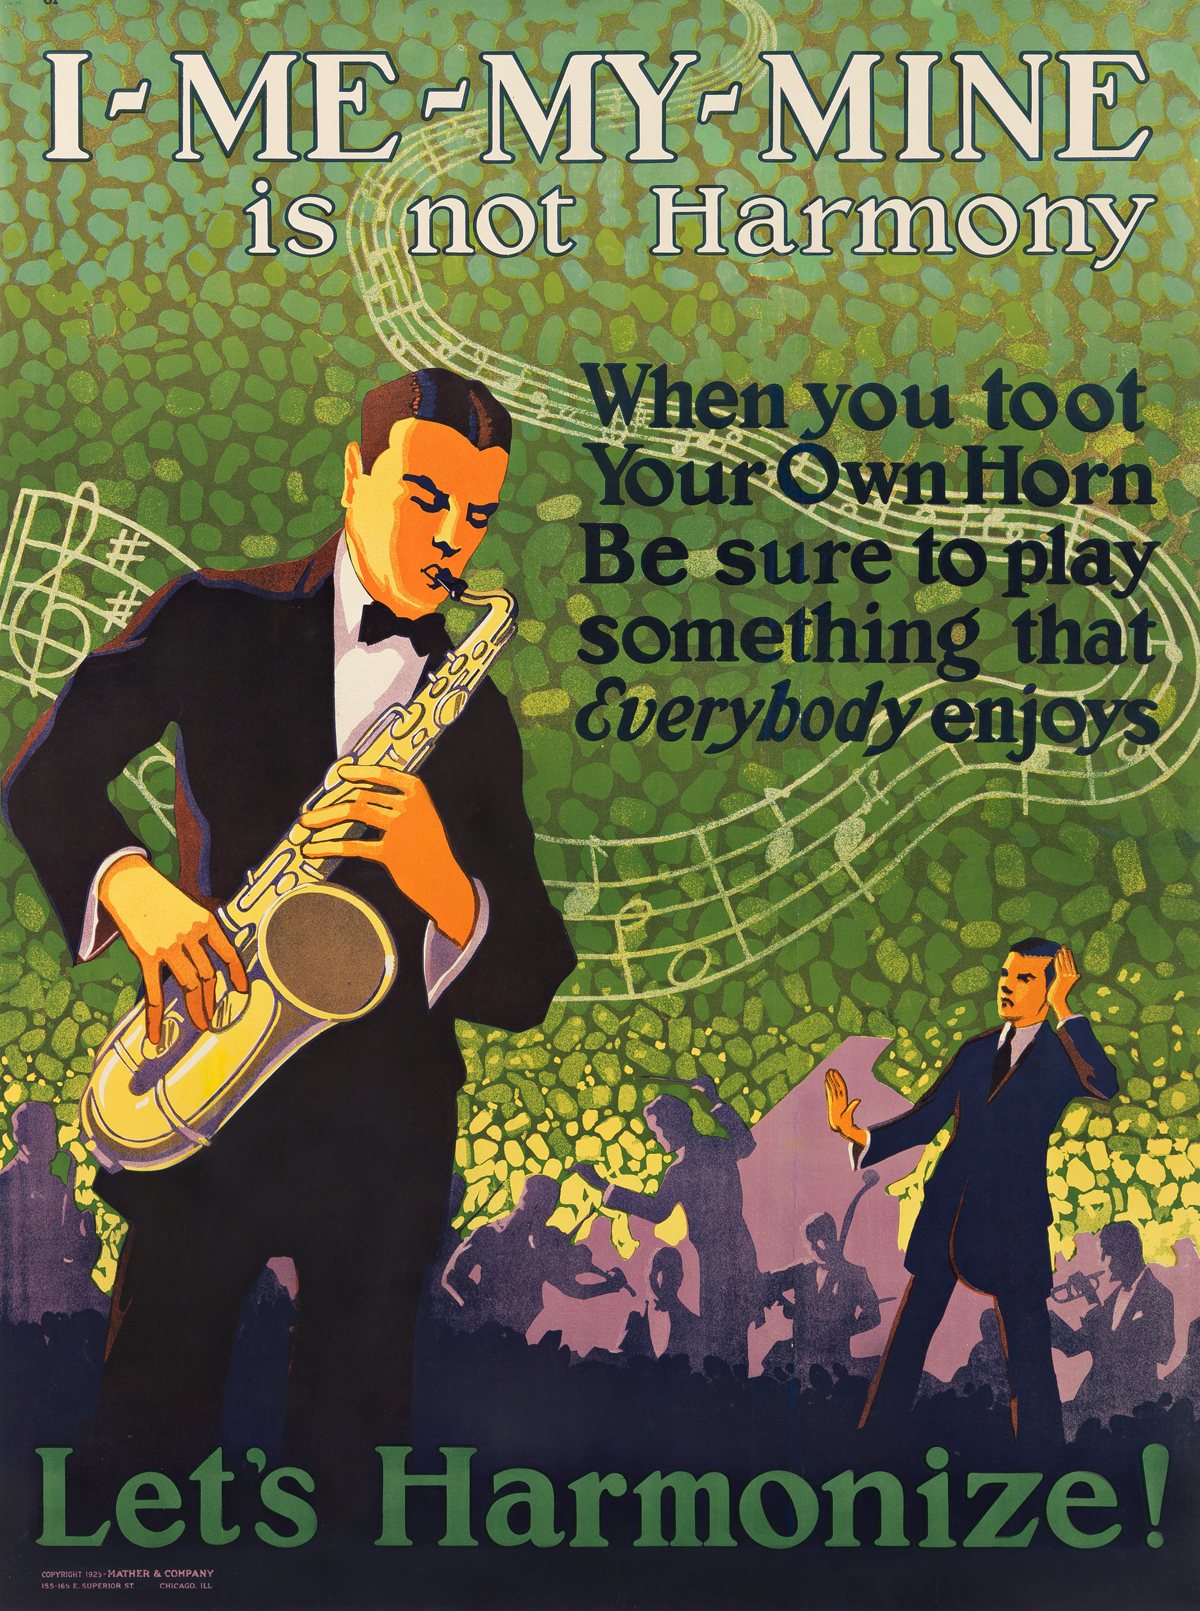 DESIGNER UNKNOWN.  I - ME - MY - MINE IS NOT HARMONY / LETS HARMONIZE! 1925. 48x36 inches, 122x91½ cm. Mather & Company, Chicago.